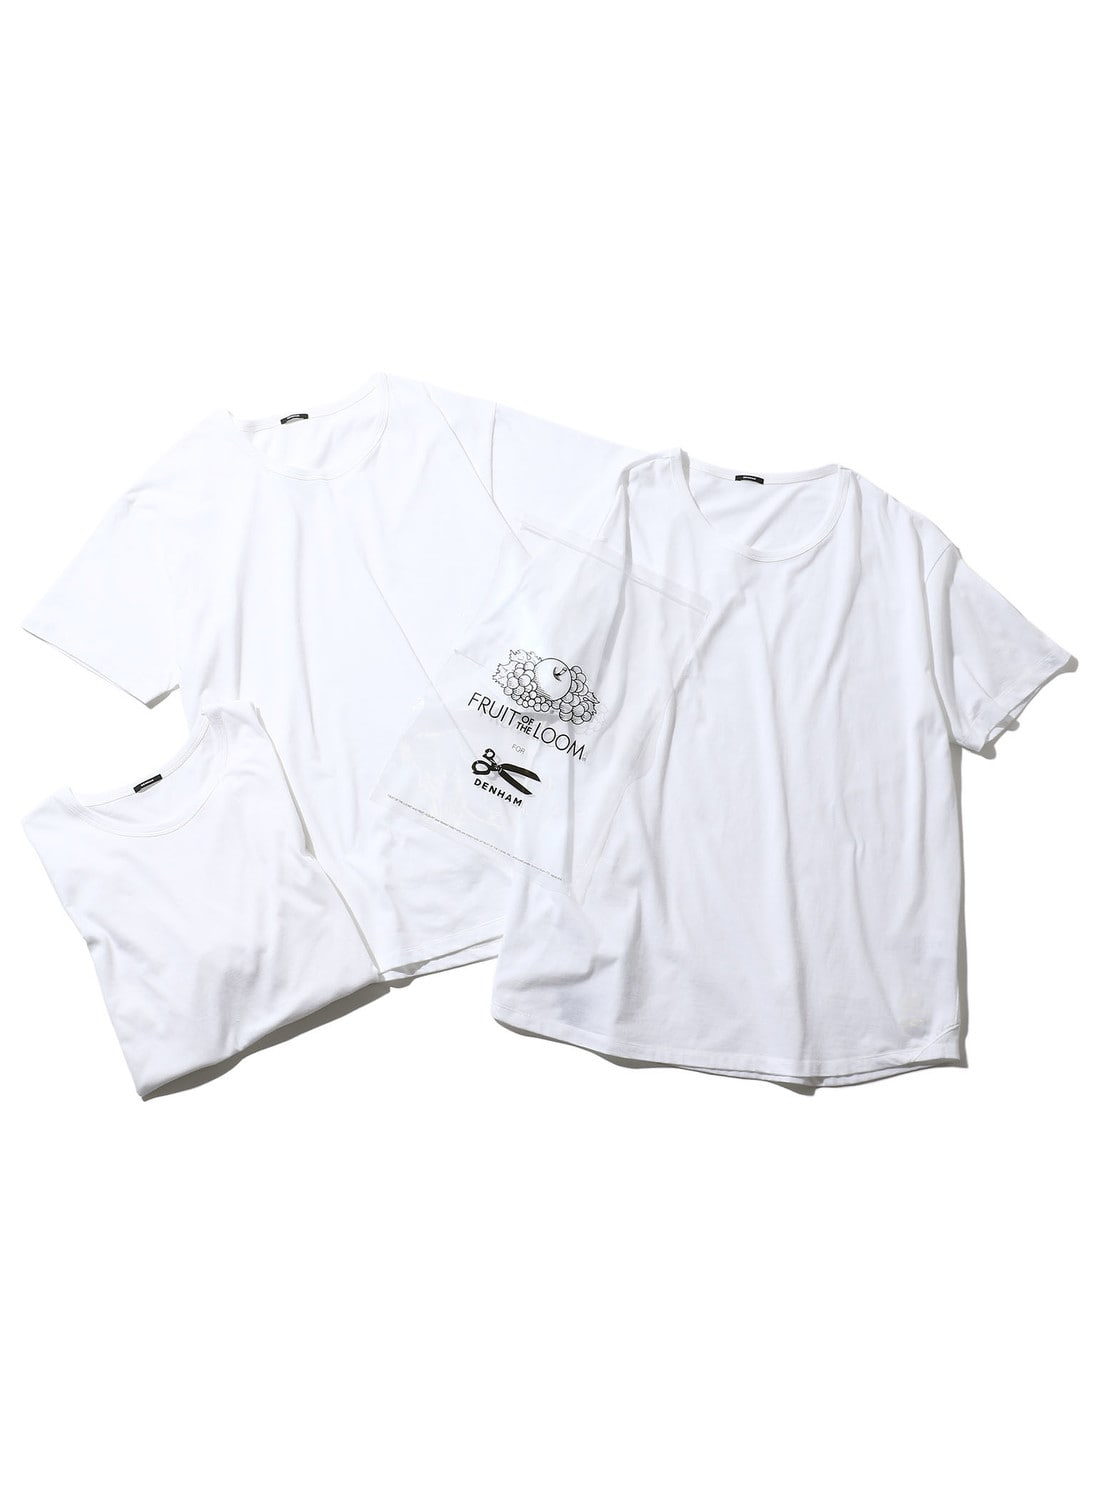 【日本限定】FRUIT 3-PACK TEE